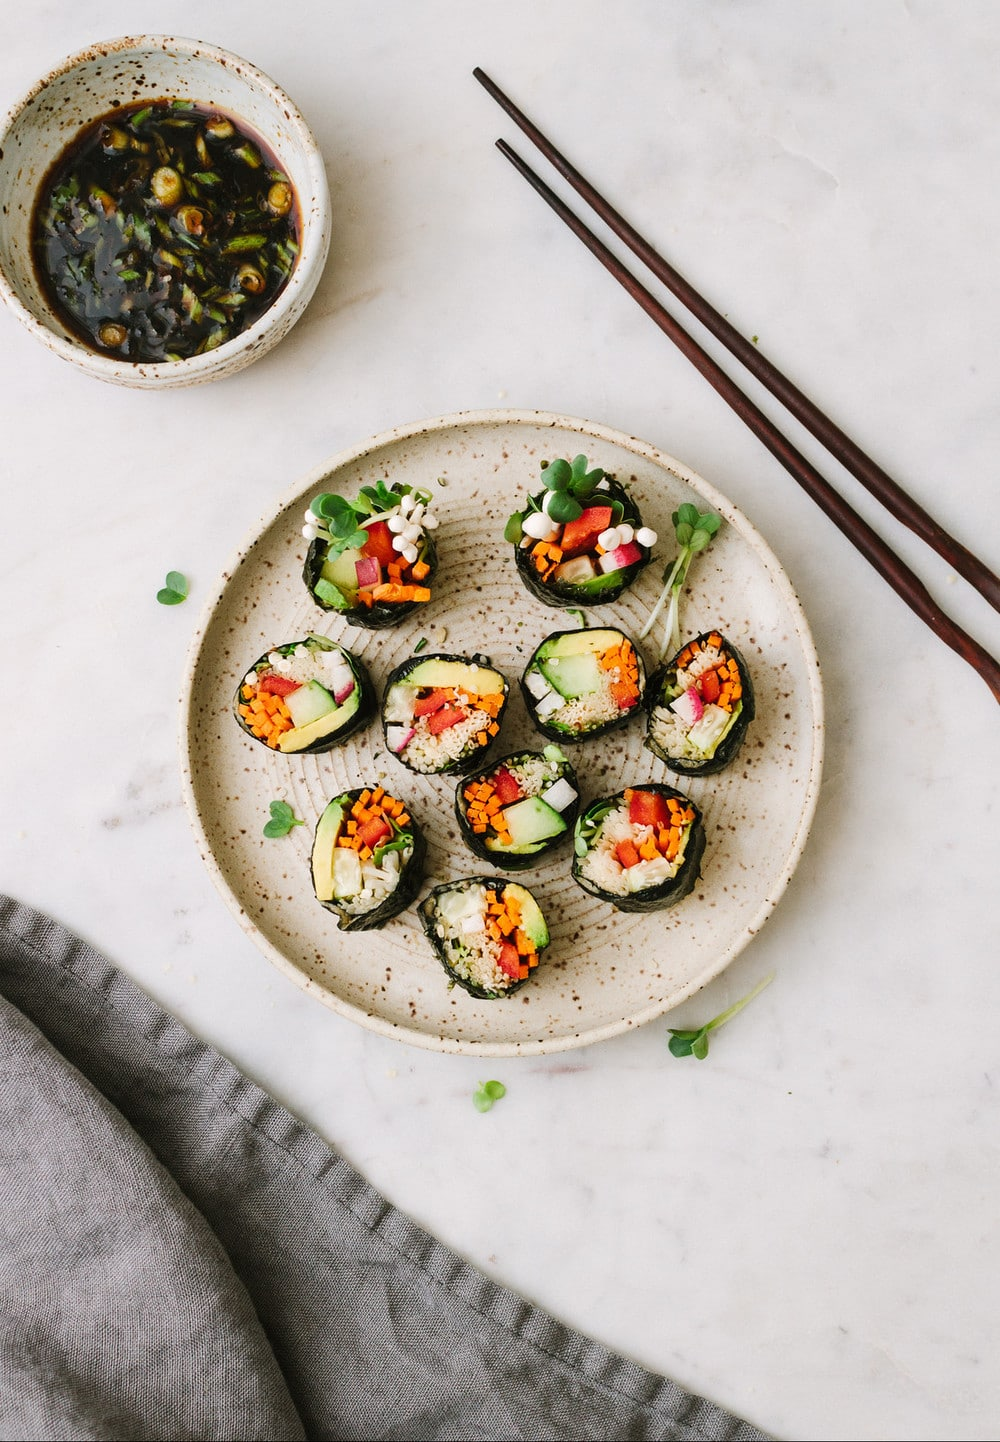 top down view of sushi roll cut up and placed on a small plate with bowl of dipping sauce, chopsticks and grey napkin